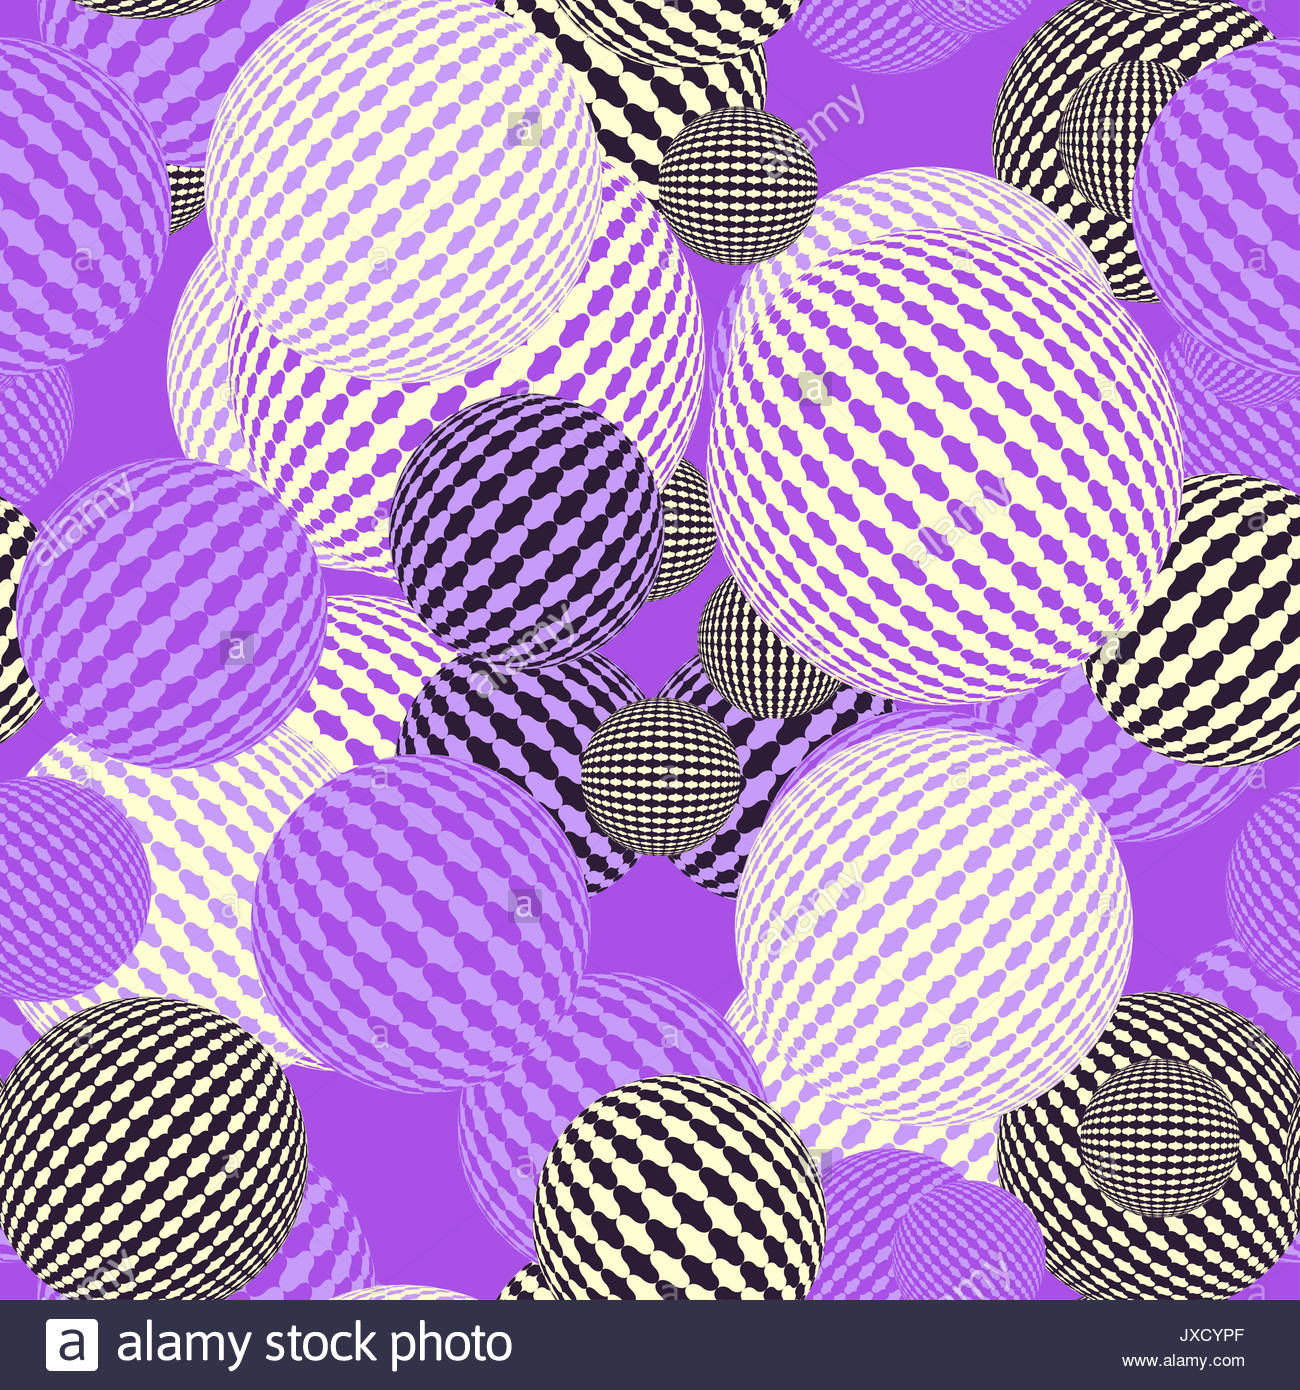 floating balloons seamless tile in purple shades - Stock Image